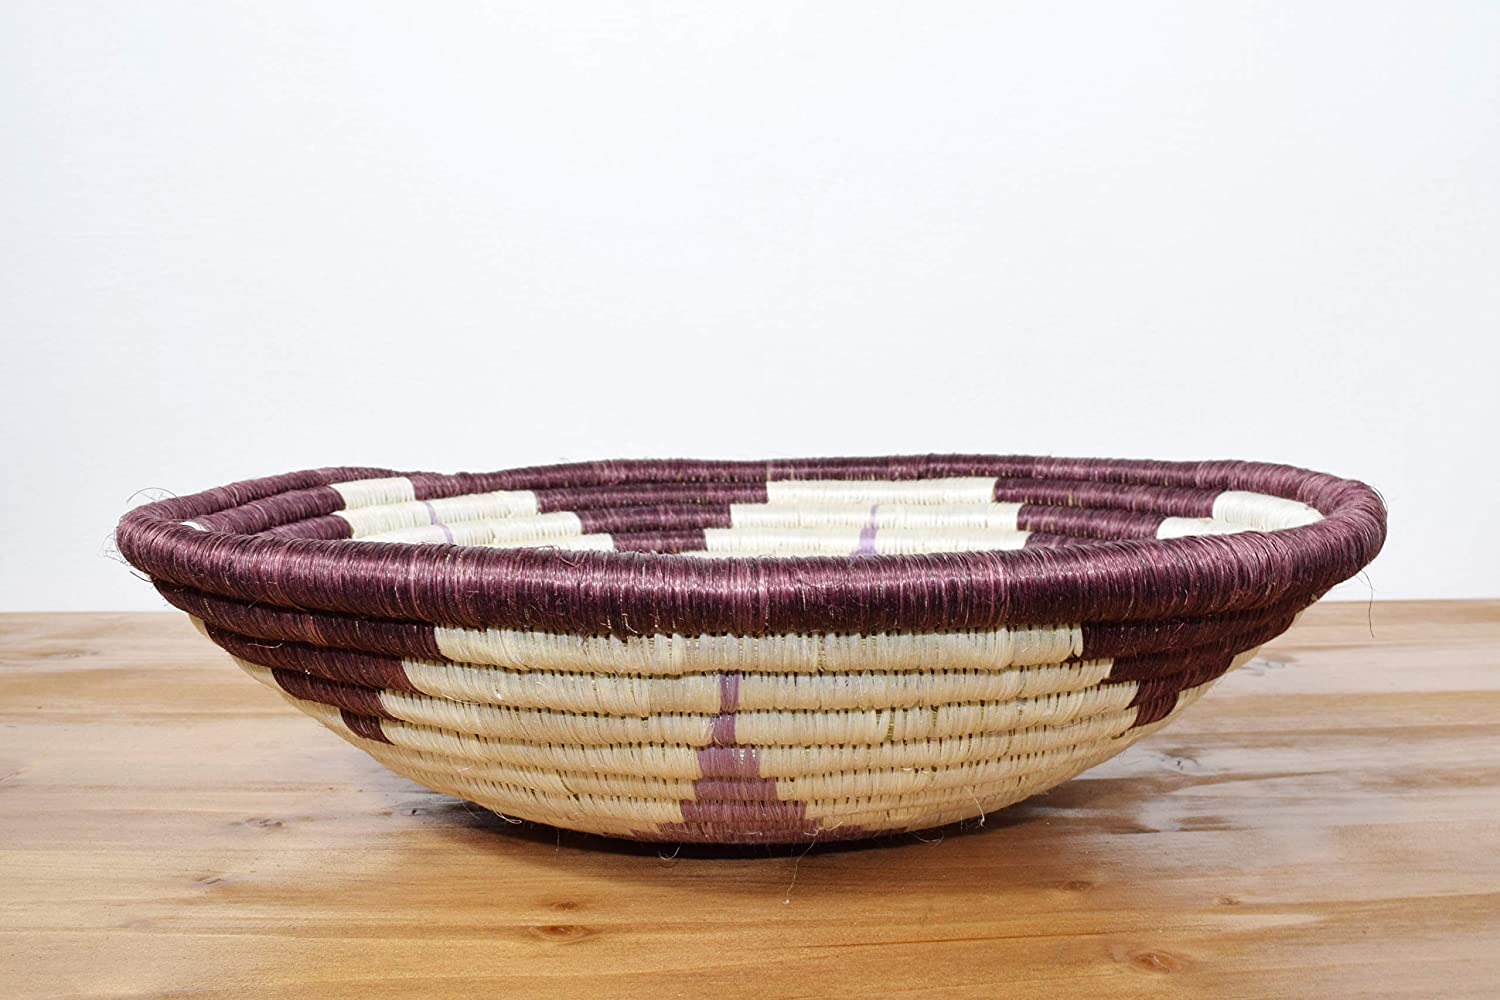 12 Inches Sisal /& Sweetgrass Basket Handmade in Rwanda Large Hand Woven African Basket RB307